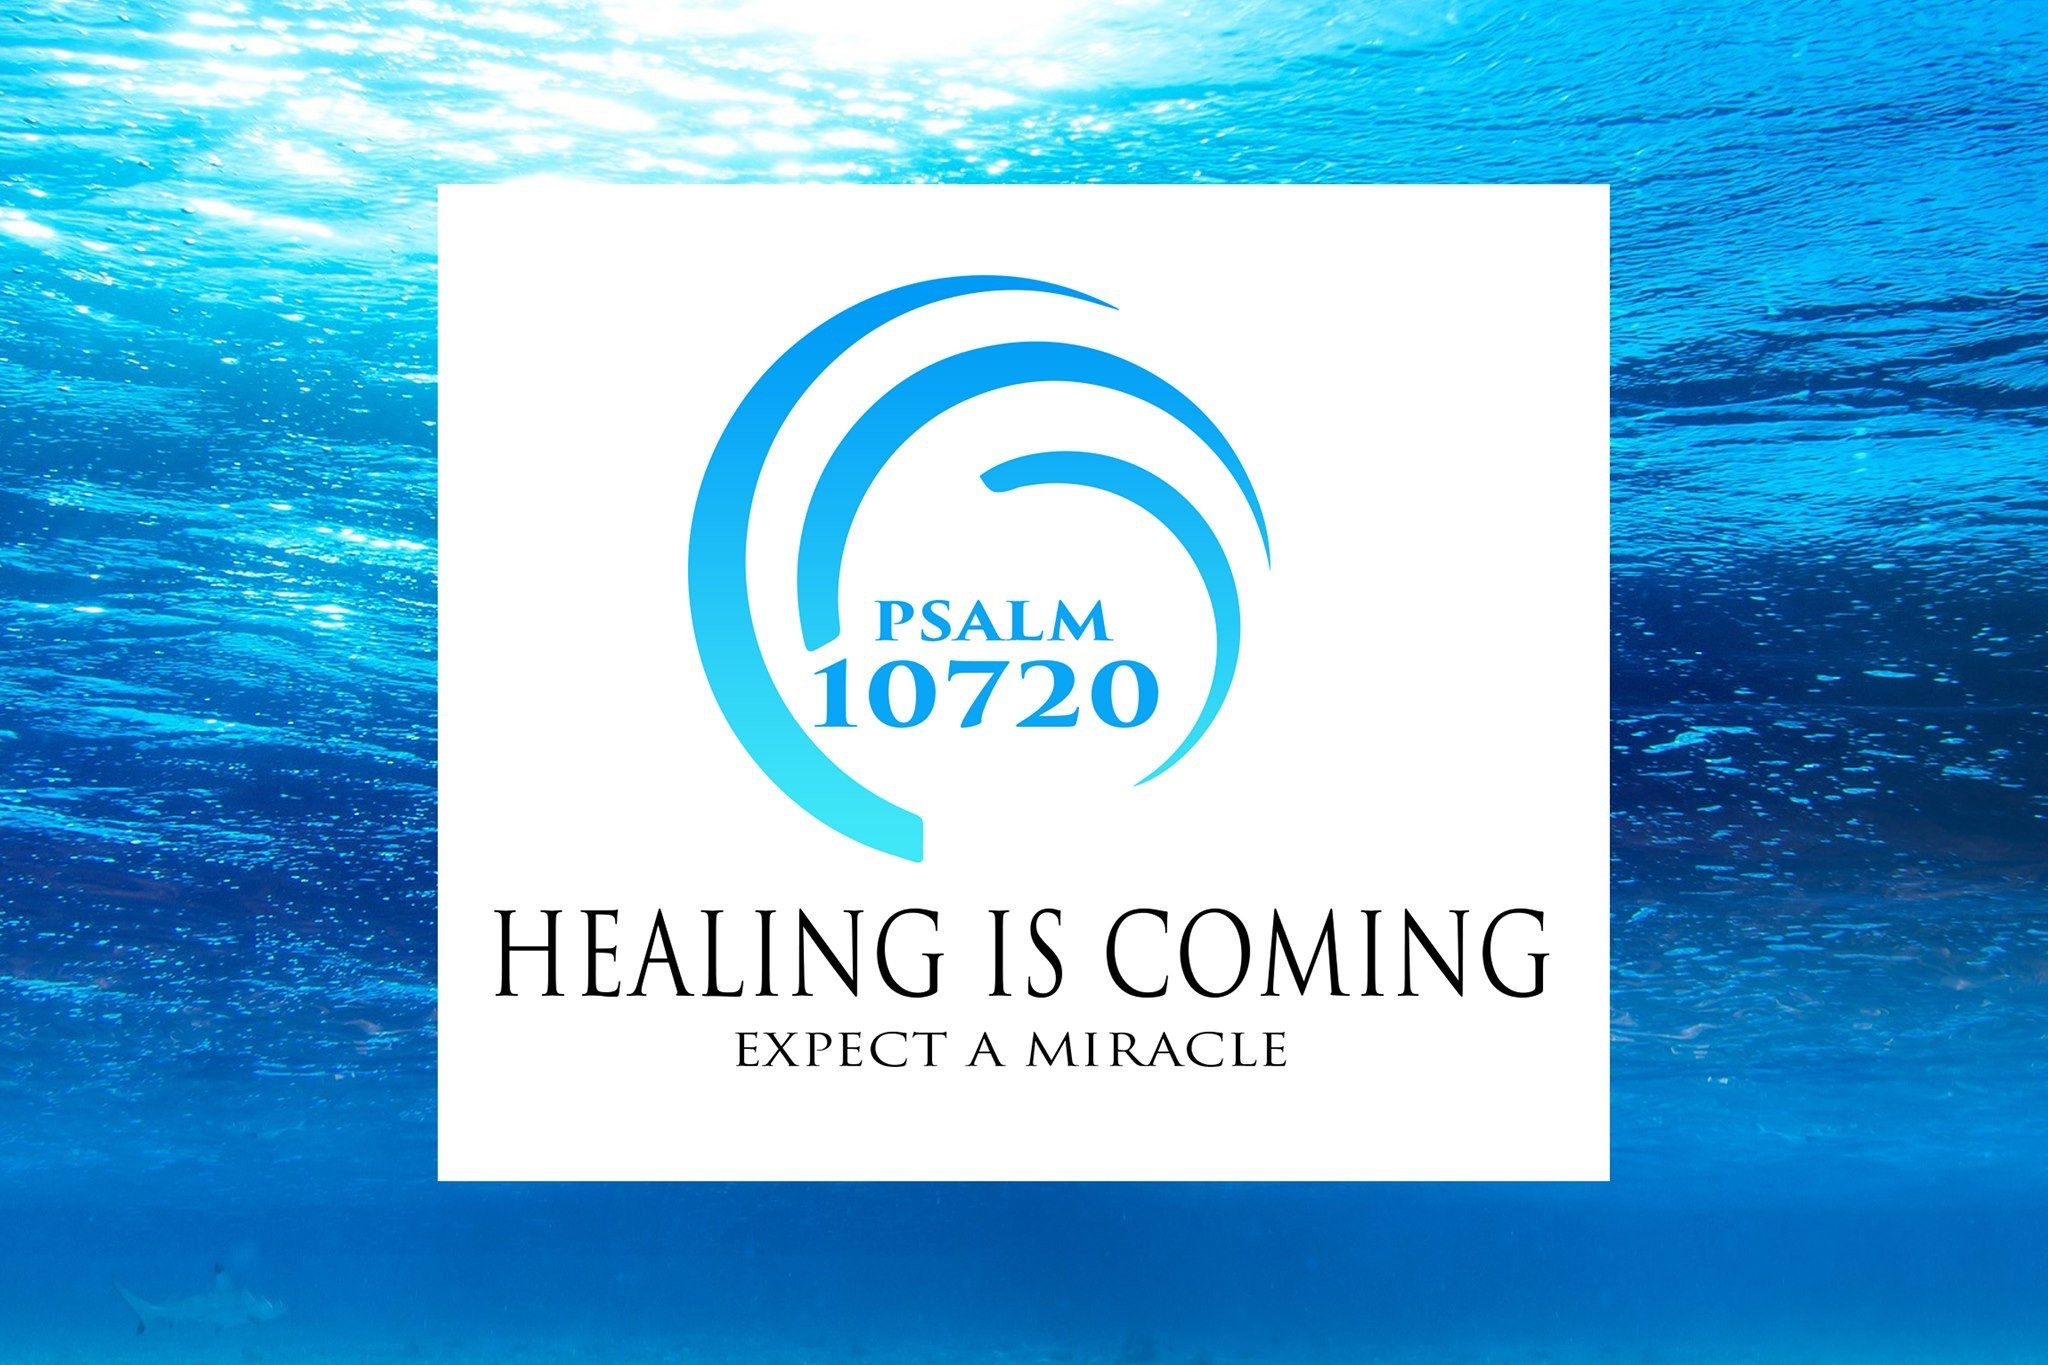 Healing is Coming links to the Healing is Coming.life website.